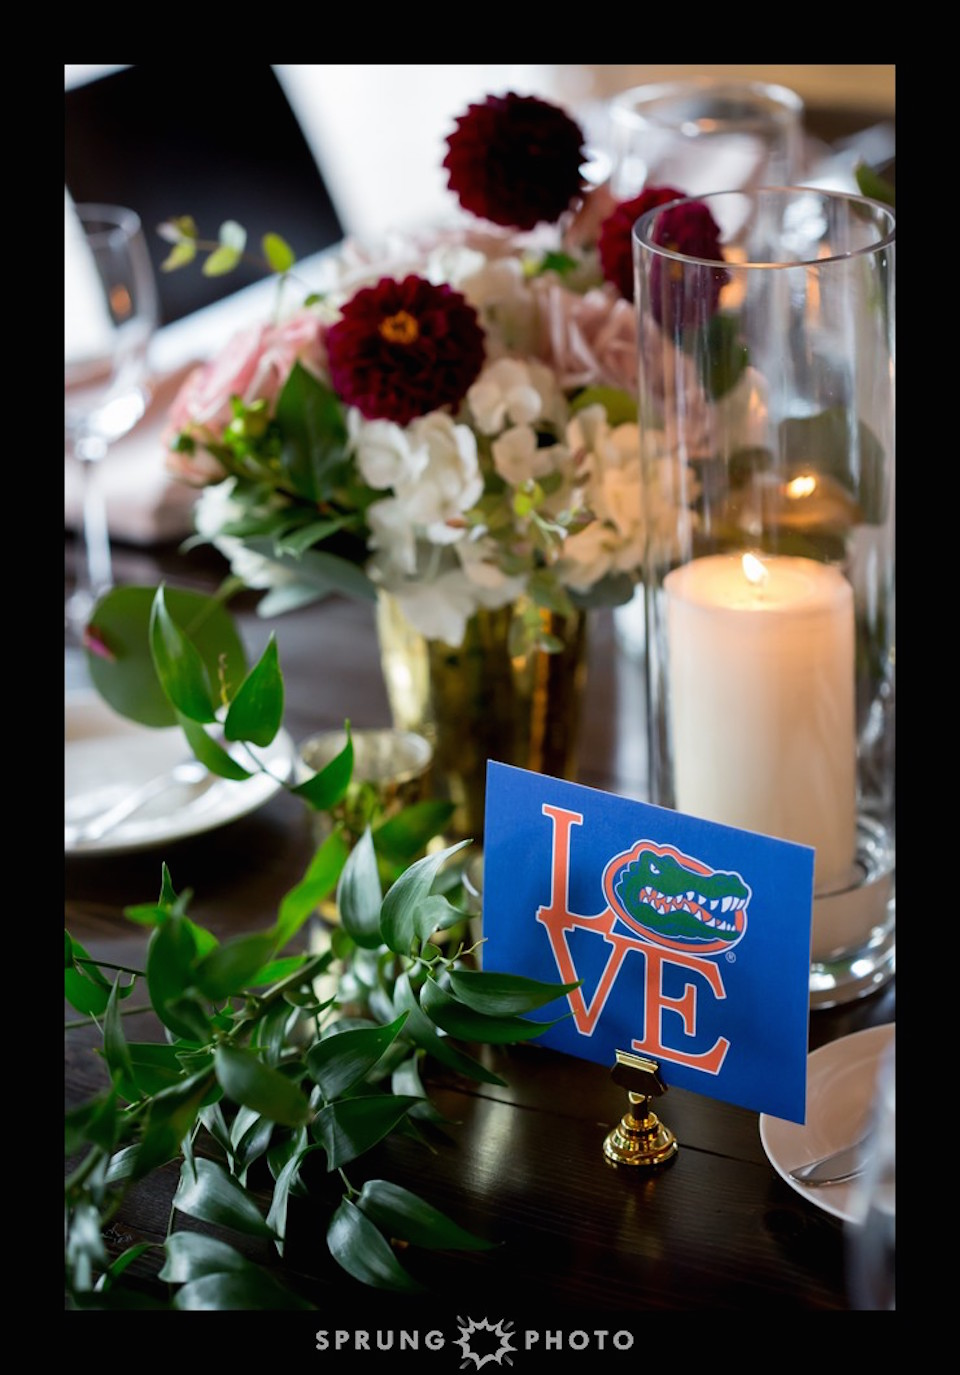 DB8A0128_Caroline-and-Jeremiah-Salvage-One-Chicago-Wedding-Sprung-Photo-web.jpg